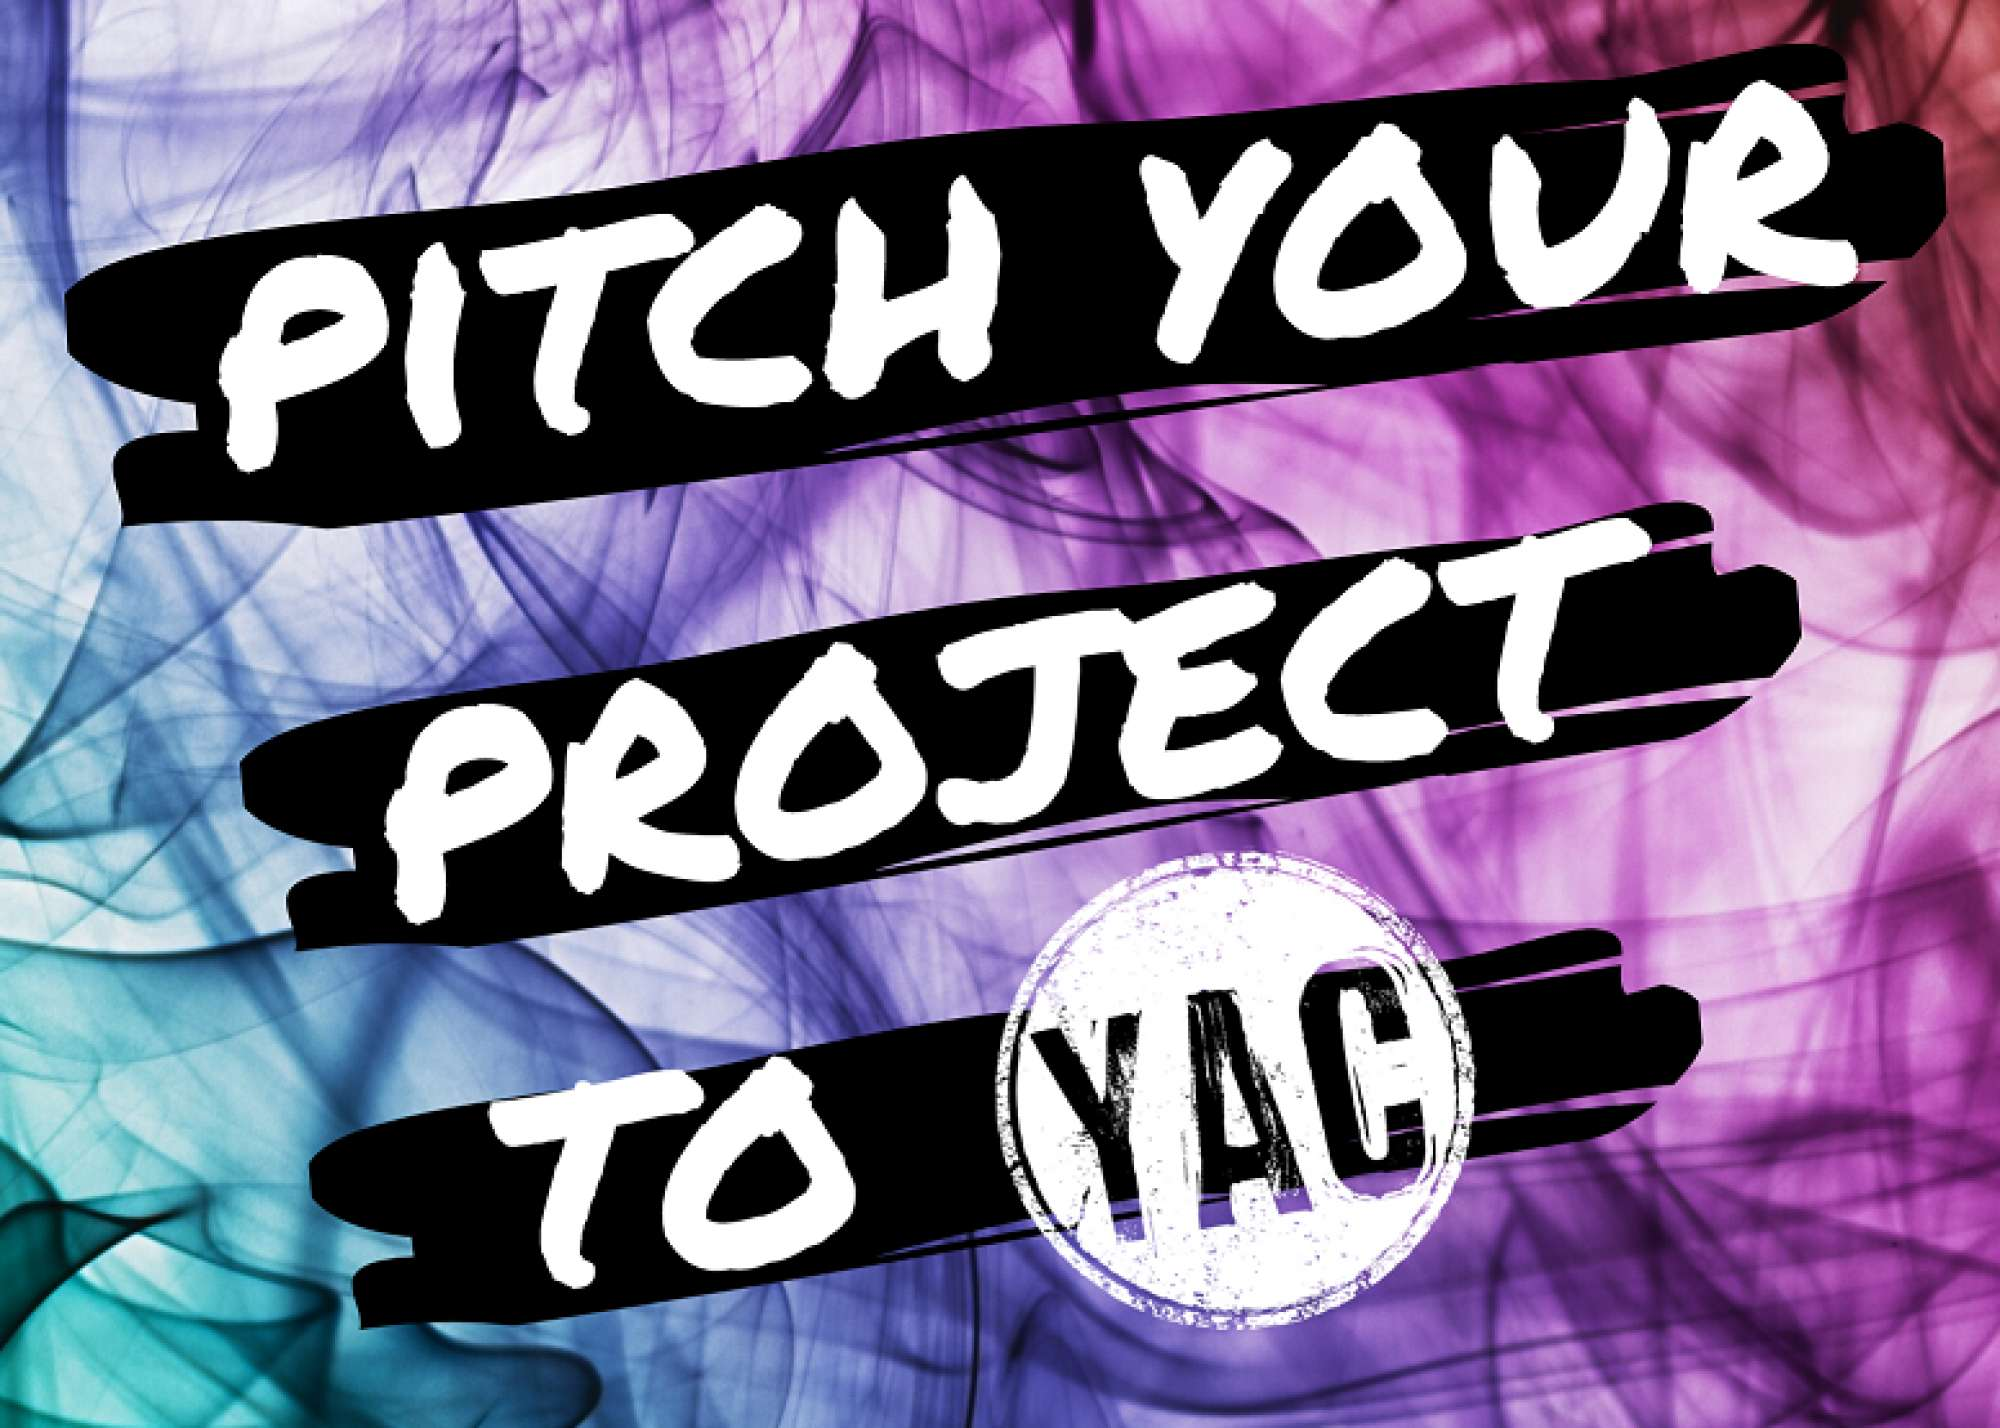 Pitch your Project heading